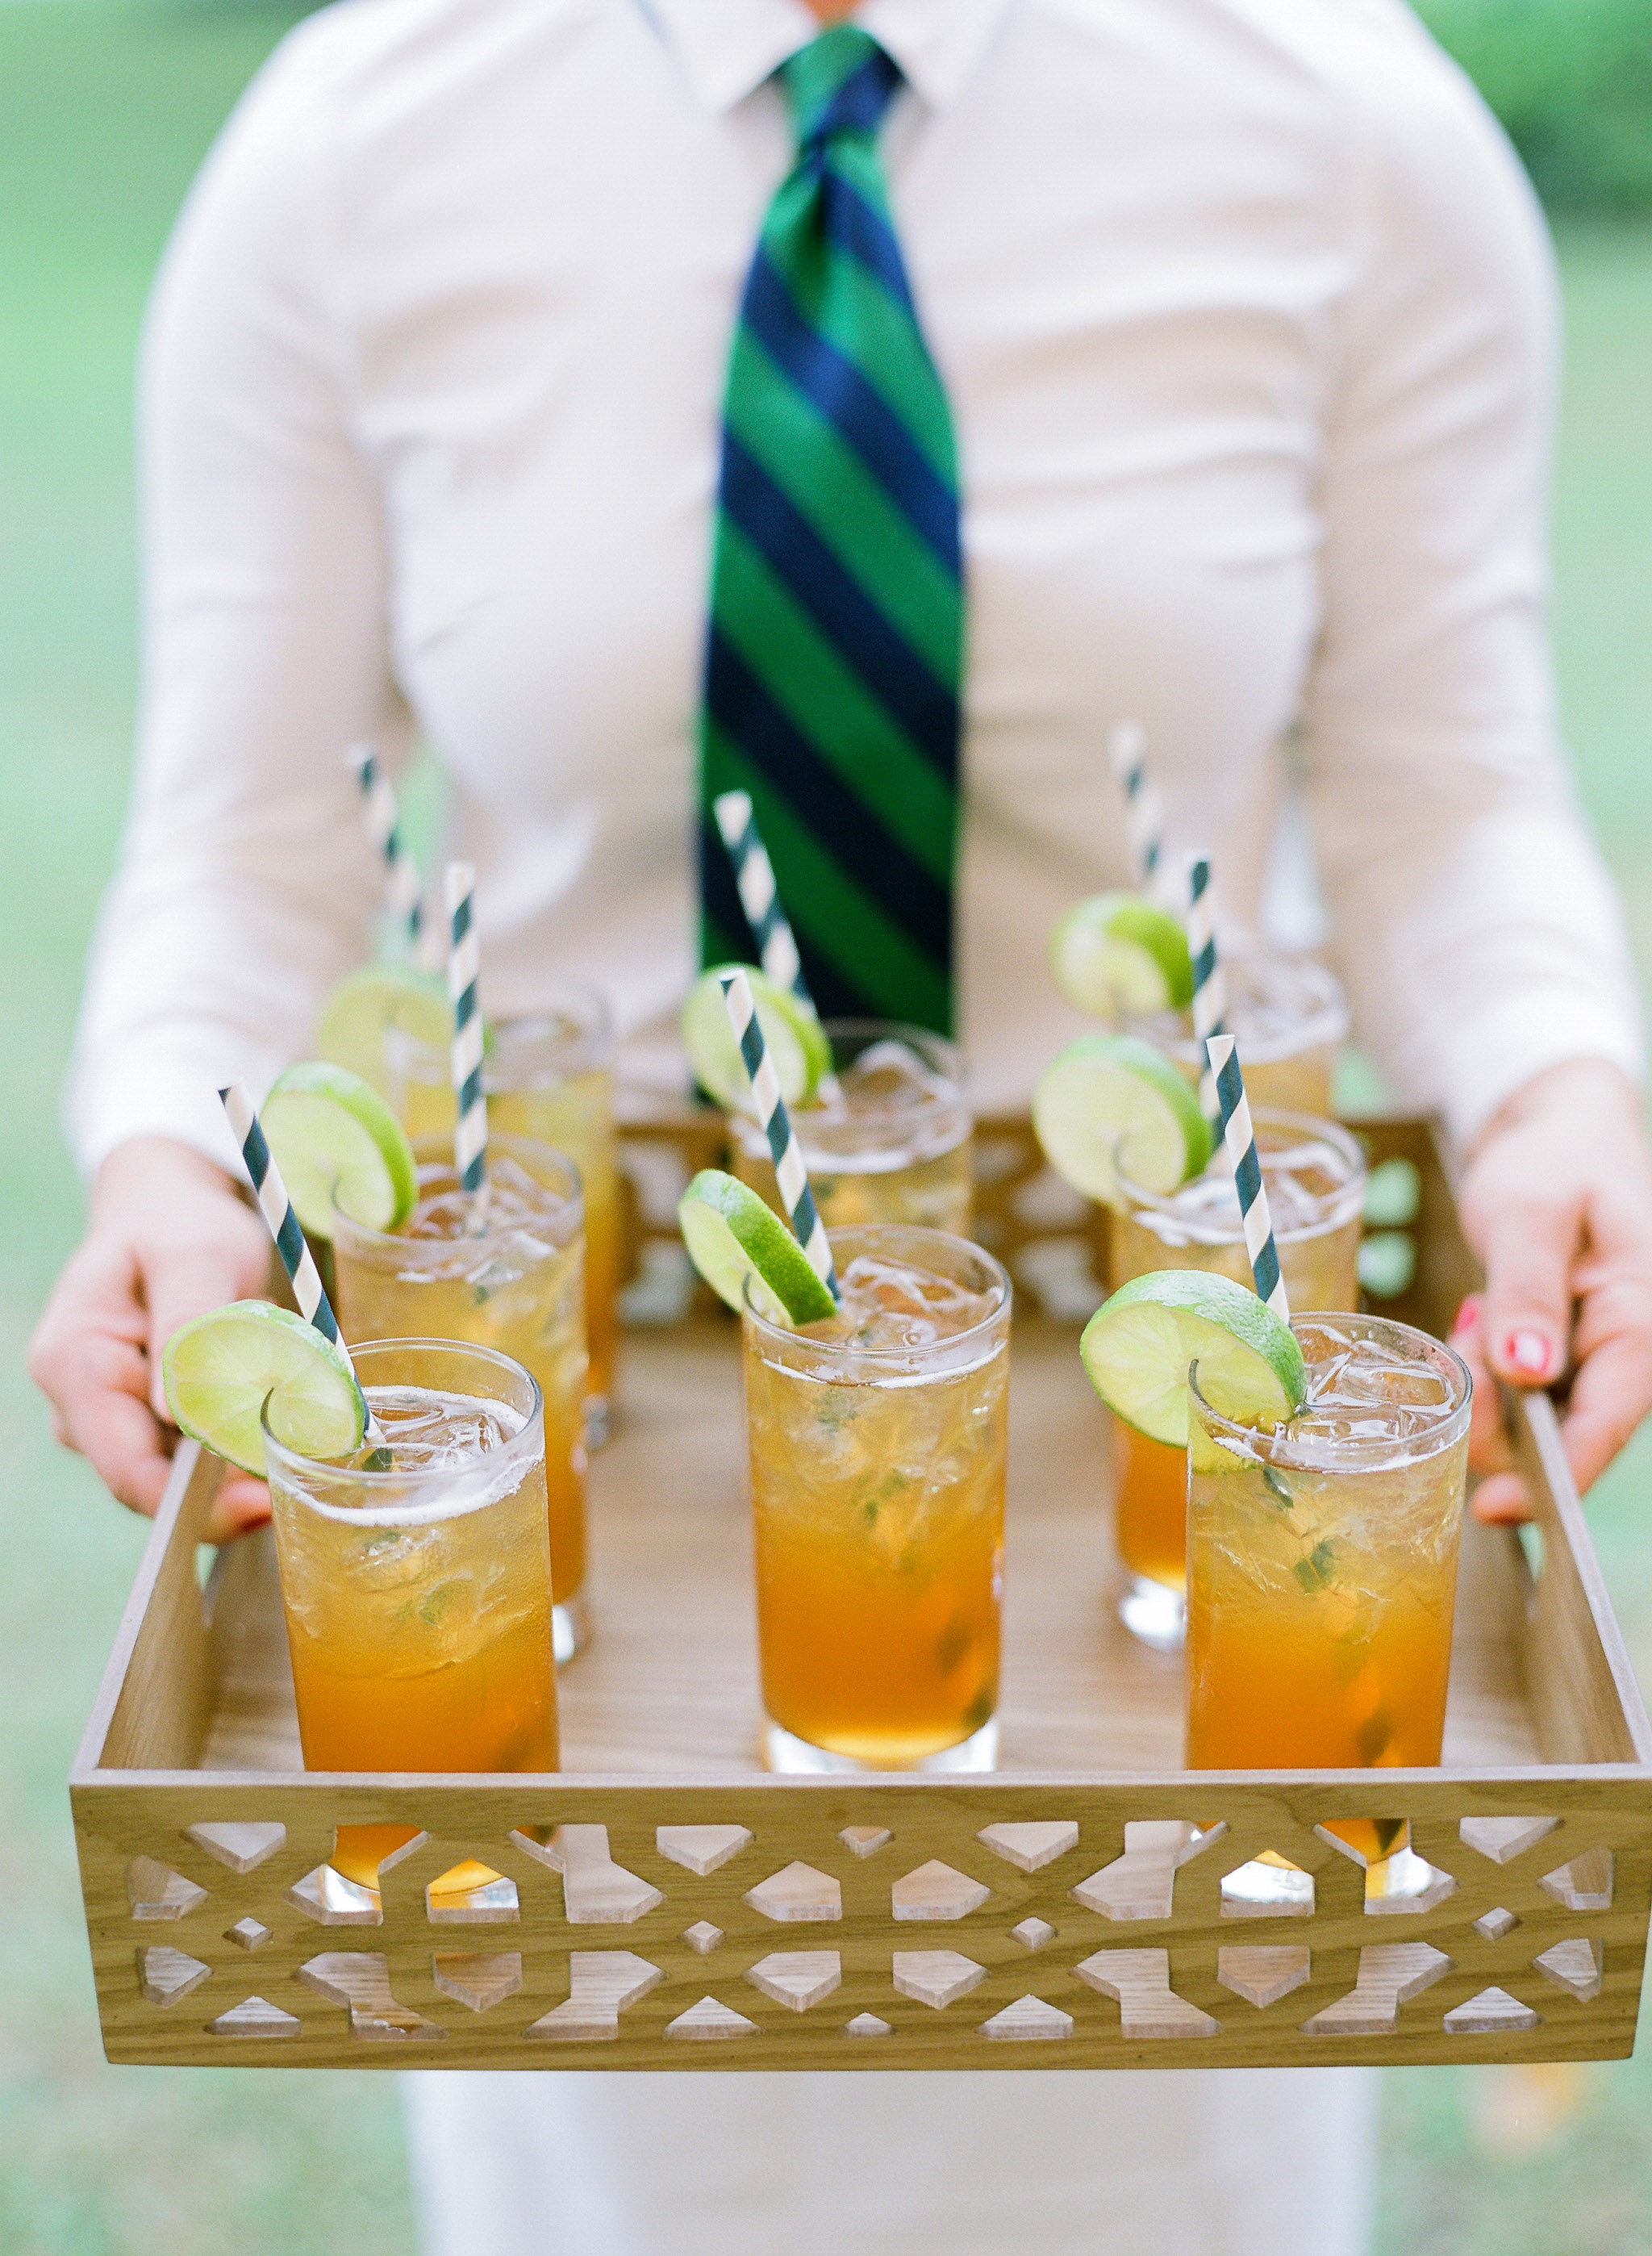 striped beverage straws with striped tie on server